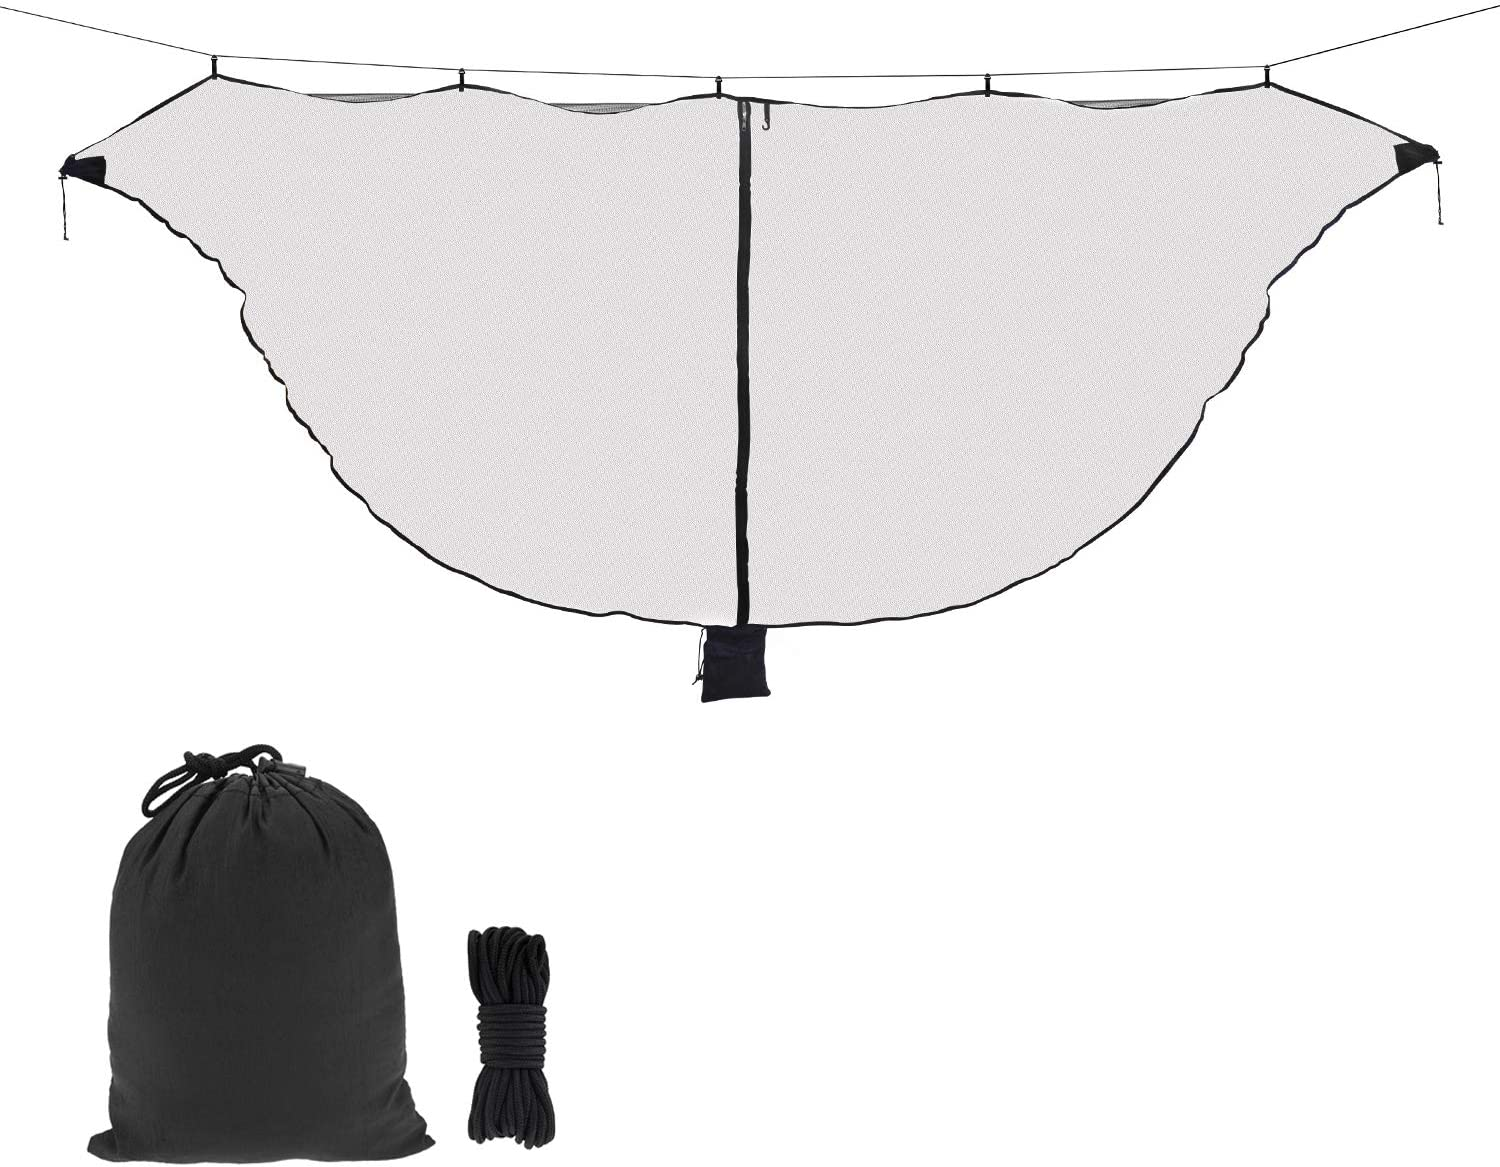 Hammock Net Camping Net Fits for All Camping Hammocks, Polyester Netting for 360 Degree Protection and Double Sided Zipper for Easy Access: Sports & Outdoors